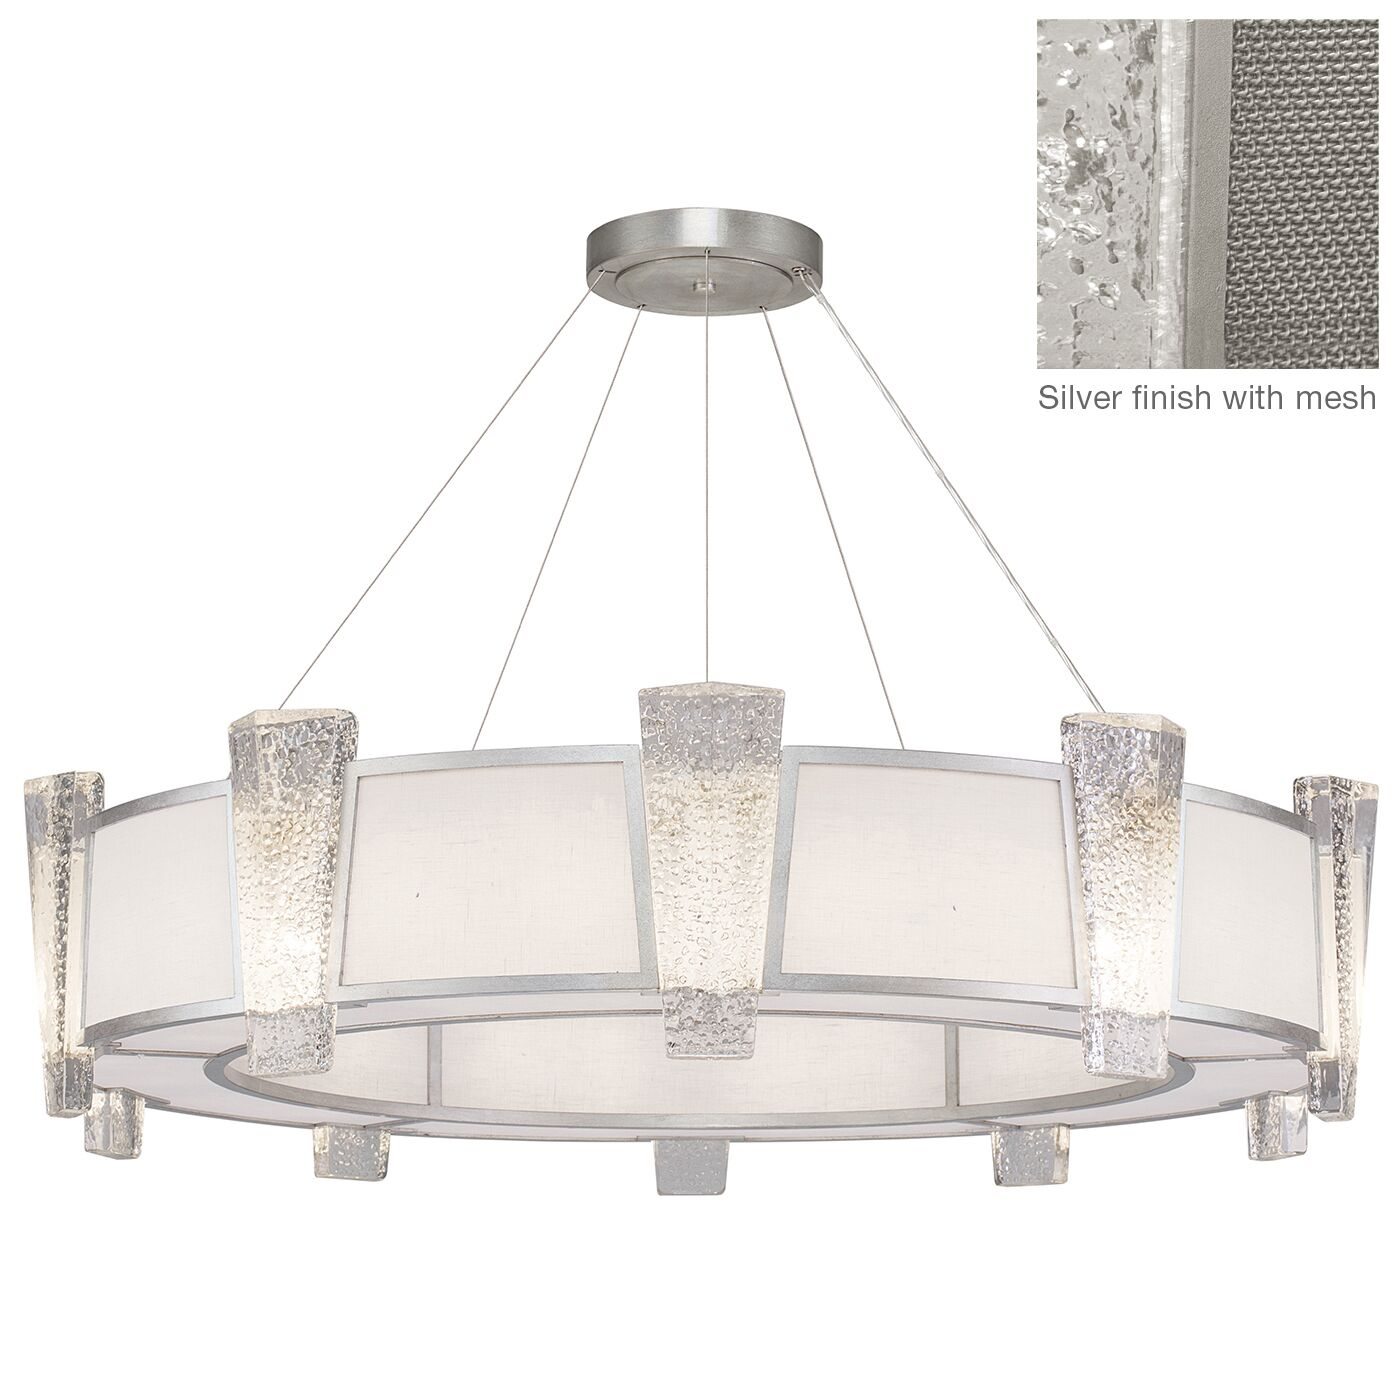 Crownstone 20-Light Chandelier Finish: Silver, Shade Material: Fabric